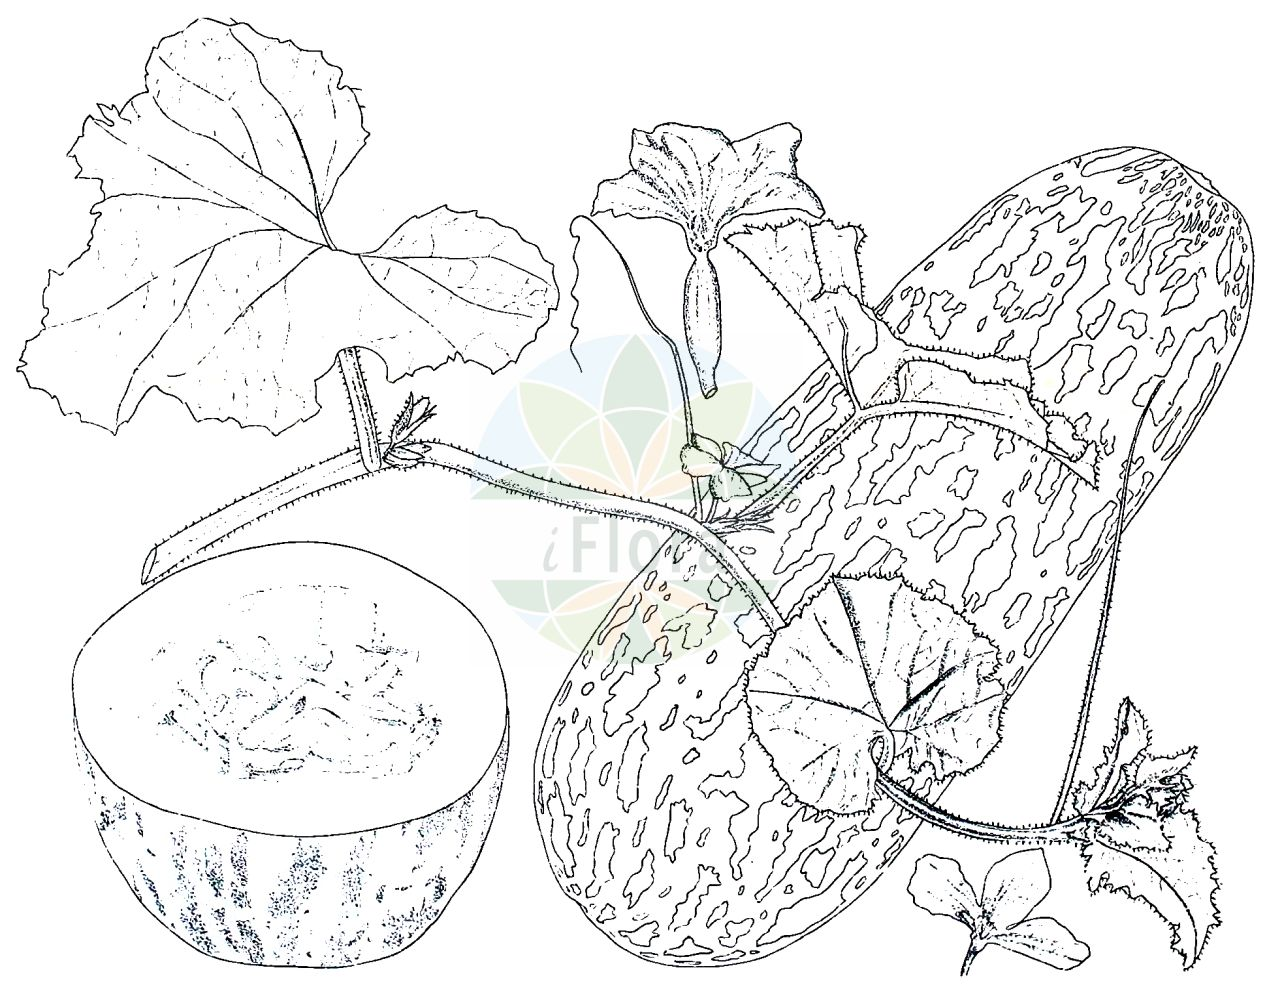 Historische Abbildung von Cucumis melo. Das Bild zeigt Blatt, Bluete, Frucht und Same. ---- Historical Drawing of Cucumis melo.The image is showing leaf, flower, fruit and seed.(Cucumis melo,Citrullus melo,Cucumis acidus,Cucumis callosus,Cucumis chate,Cucumis dudaim,Cucumis flexuosus,Cucumis melo,Cucumis trigonus,Melo agrestis,Melo dudaim,Melo sativus,Cucumis,Cucurbitaceae,Kuerbisgewaechse,Cucurbit family,Blatt,Bluete,Frucht,Same,leaf,flower,fruit,seed,Kirtikar & Basu (1918))